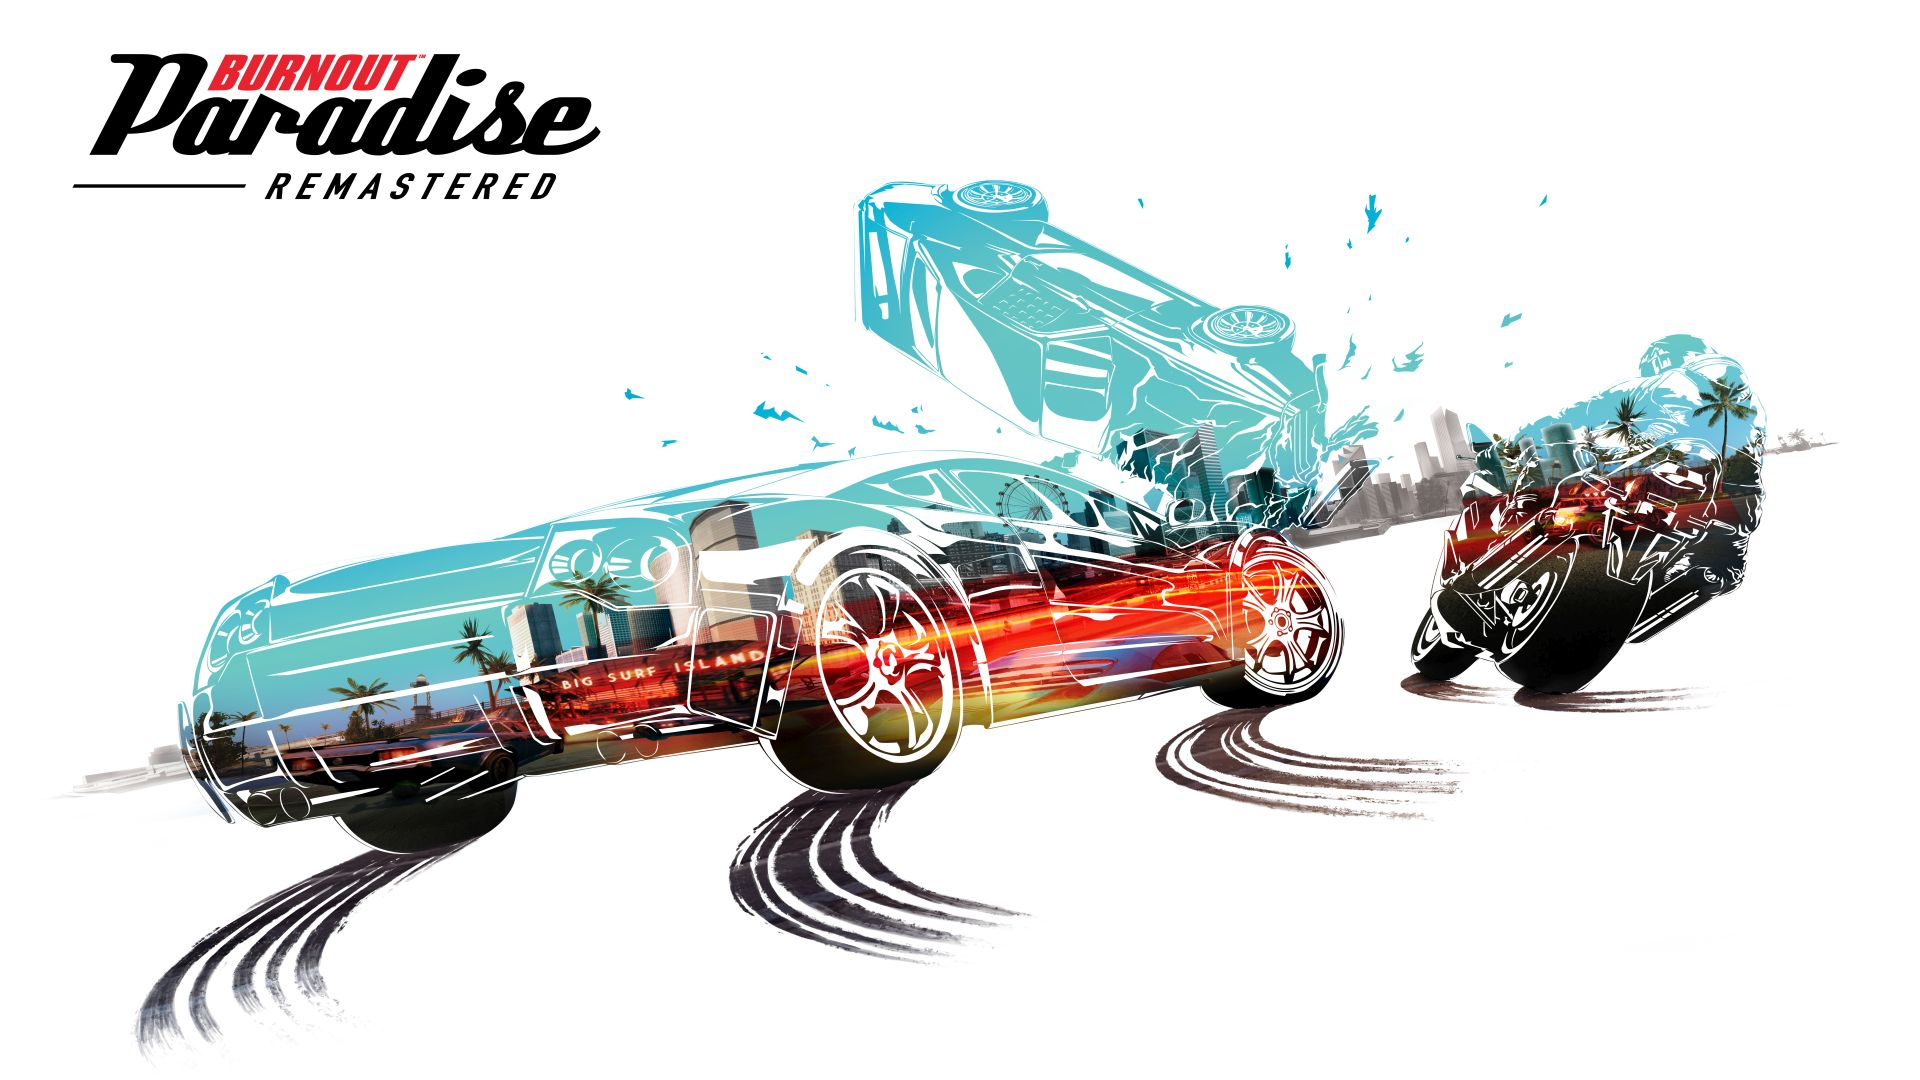 Burnout Paradise Returns! Remastered Edition To Run 4K At